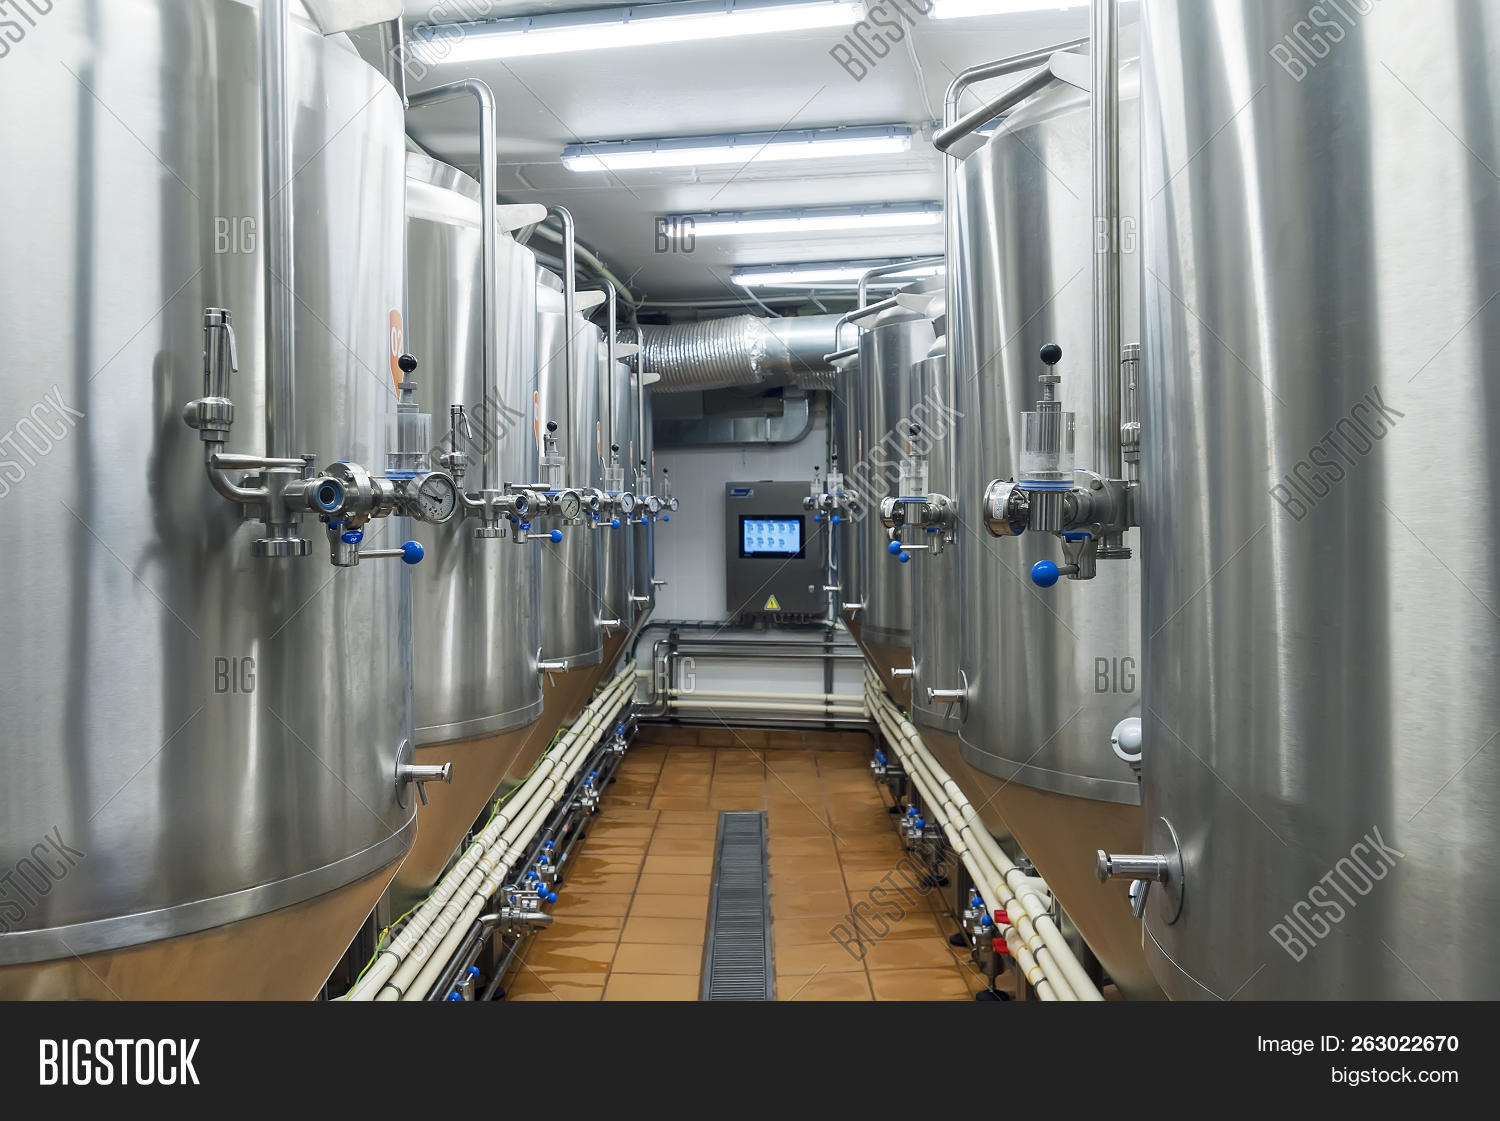 Close Image Preview Image Preview. Modern Automated Beer Factory.